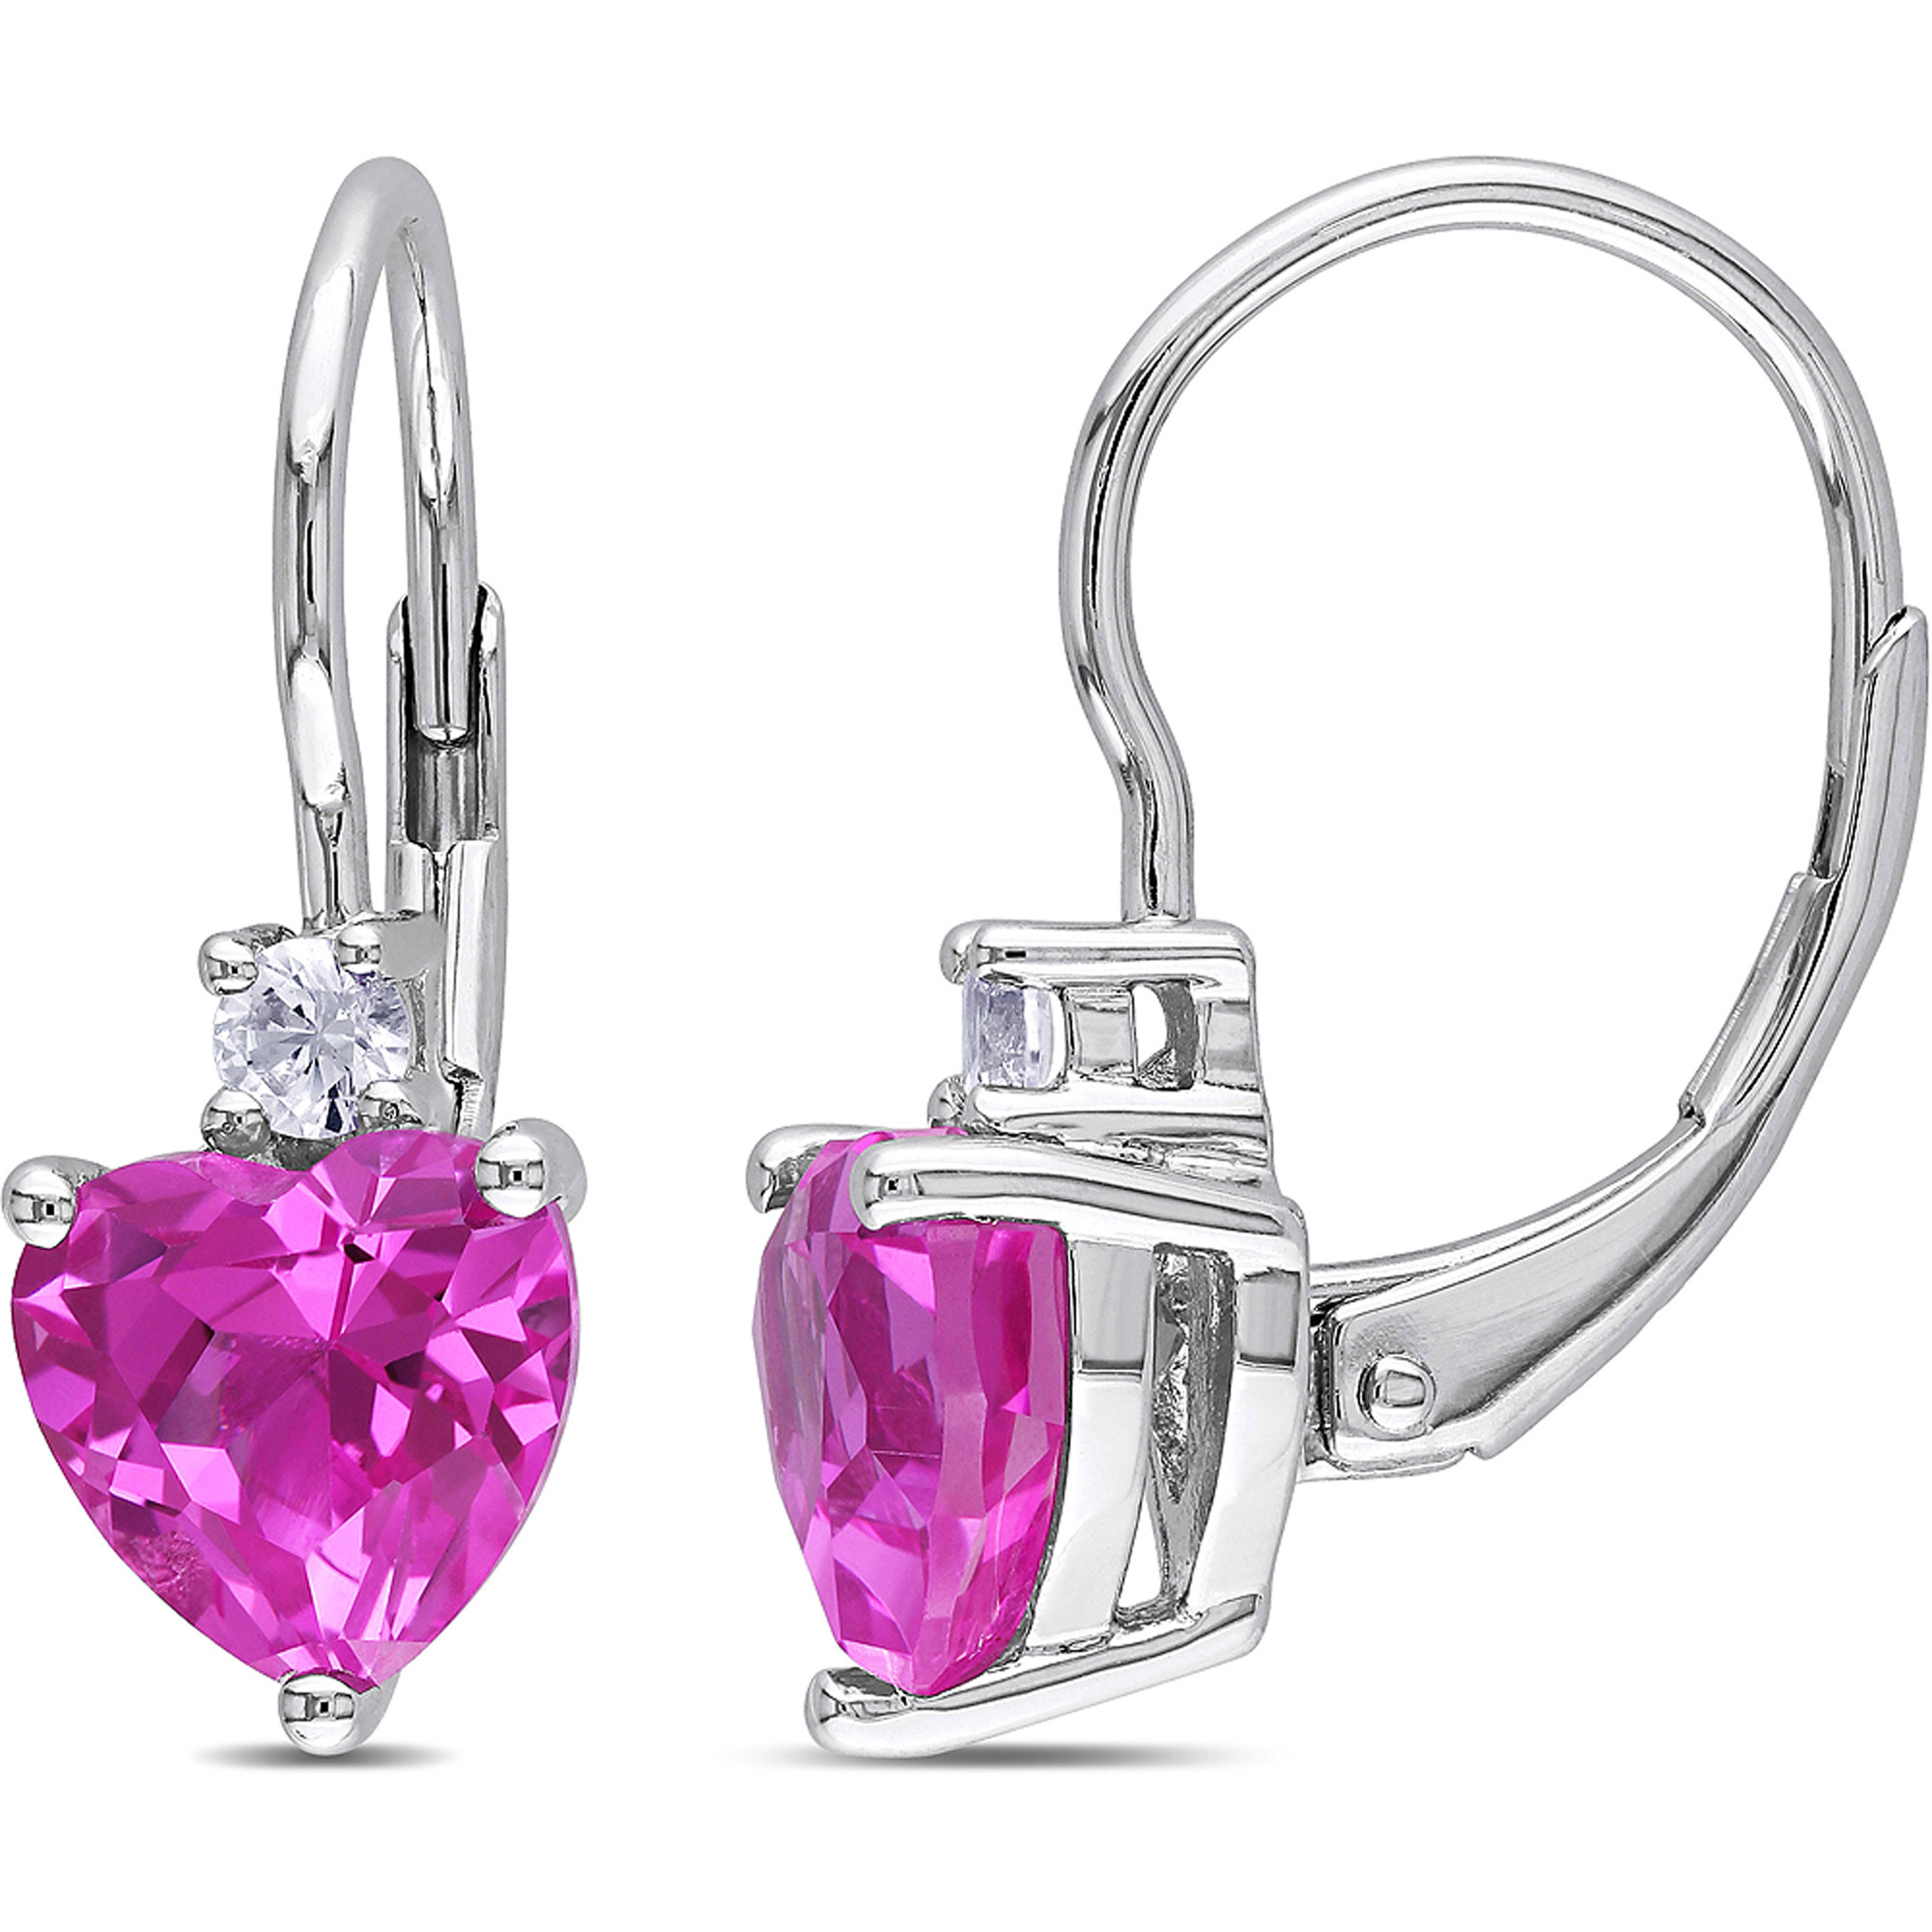 3-1/5 Carat T.G.W. Created Pink and White Sapphire Sterling Silver Leverback Heart Earrings